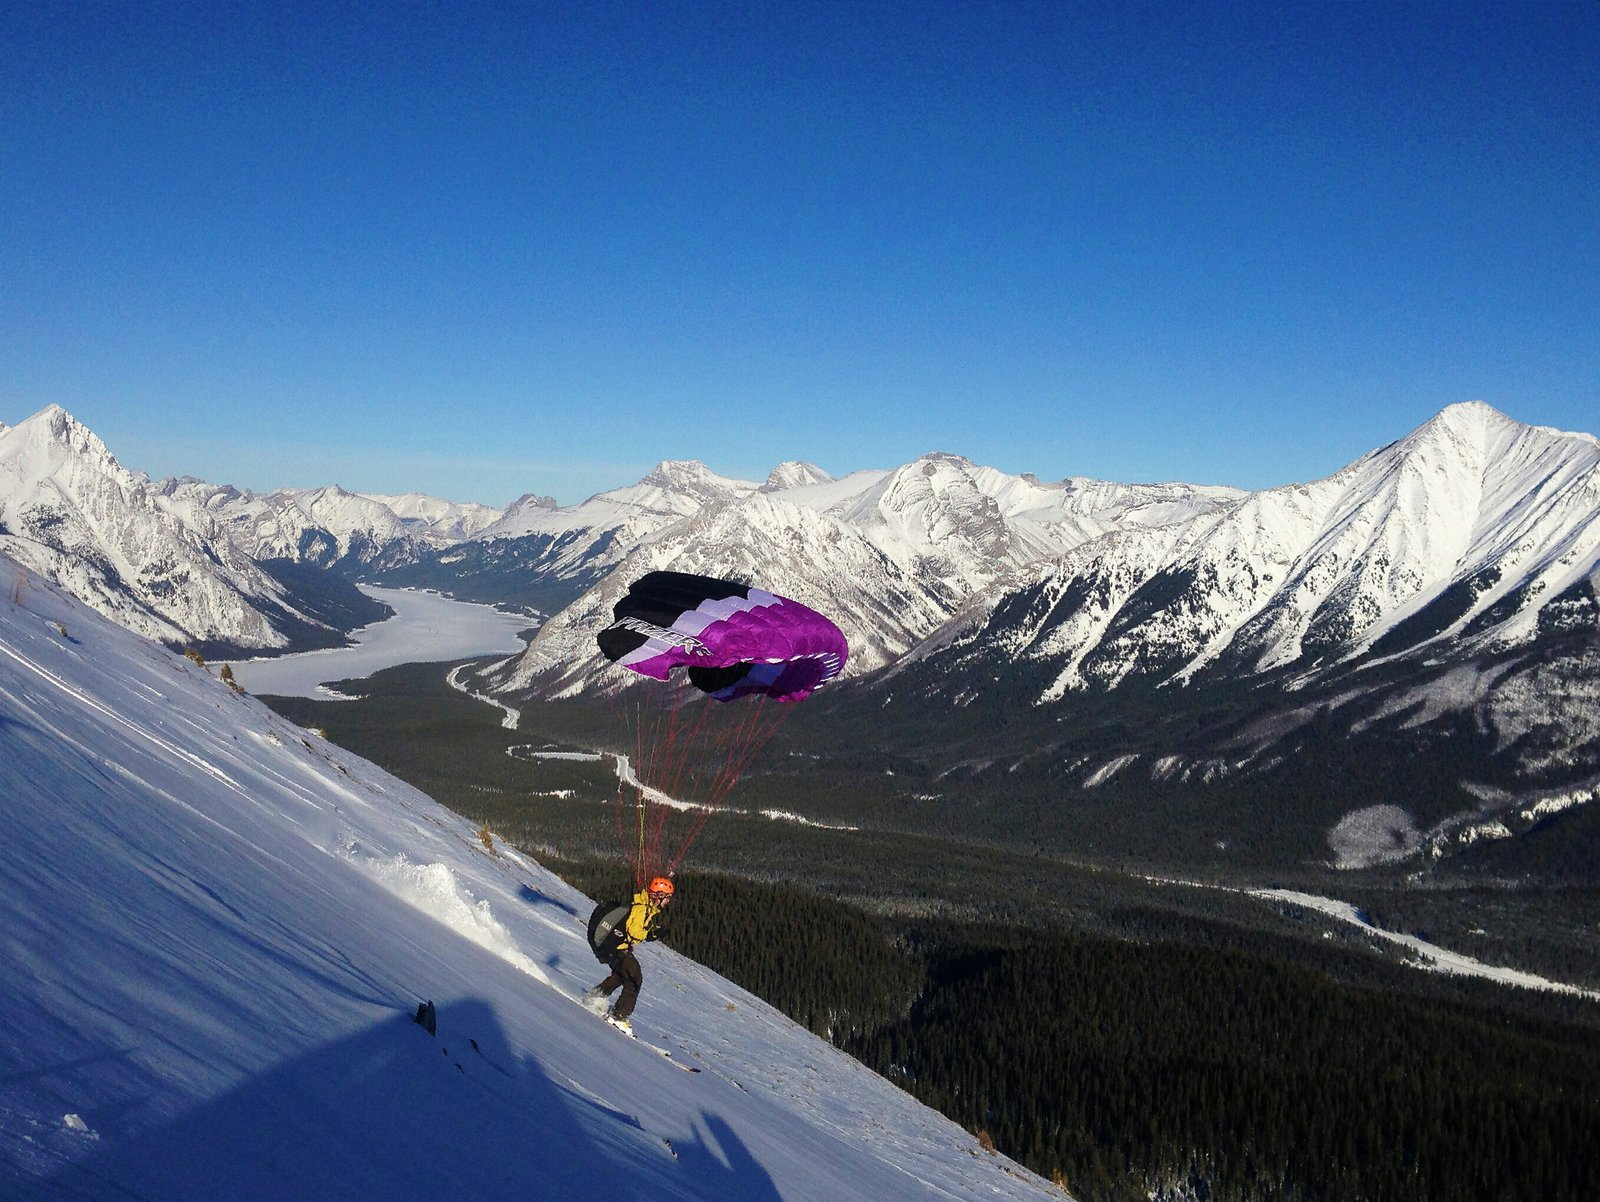 The most fun you can have with your skis on